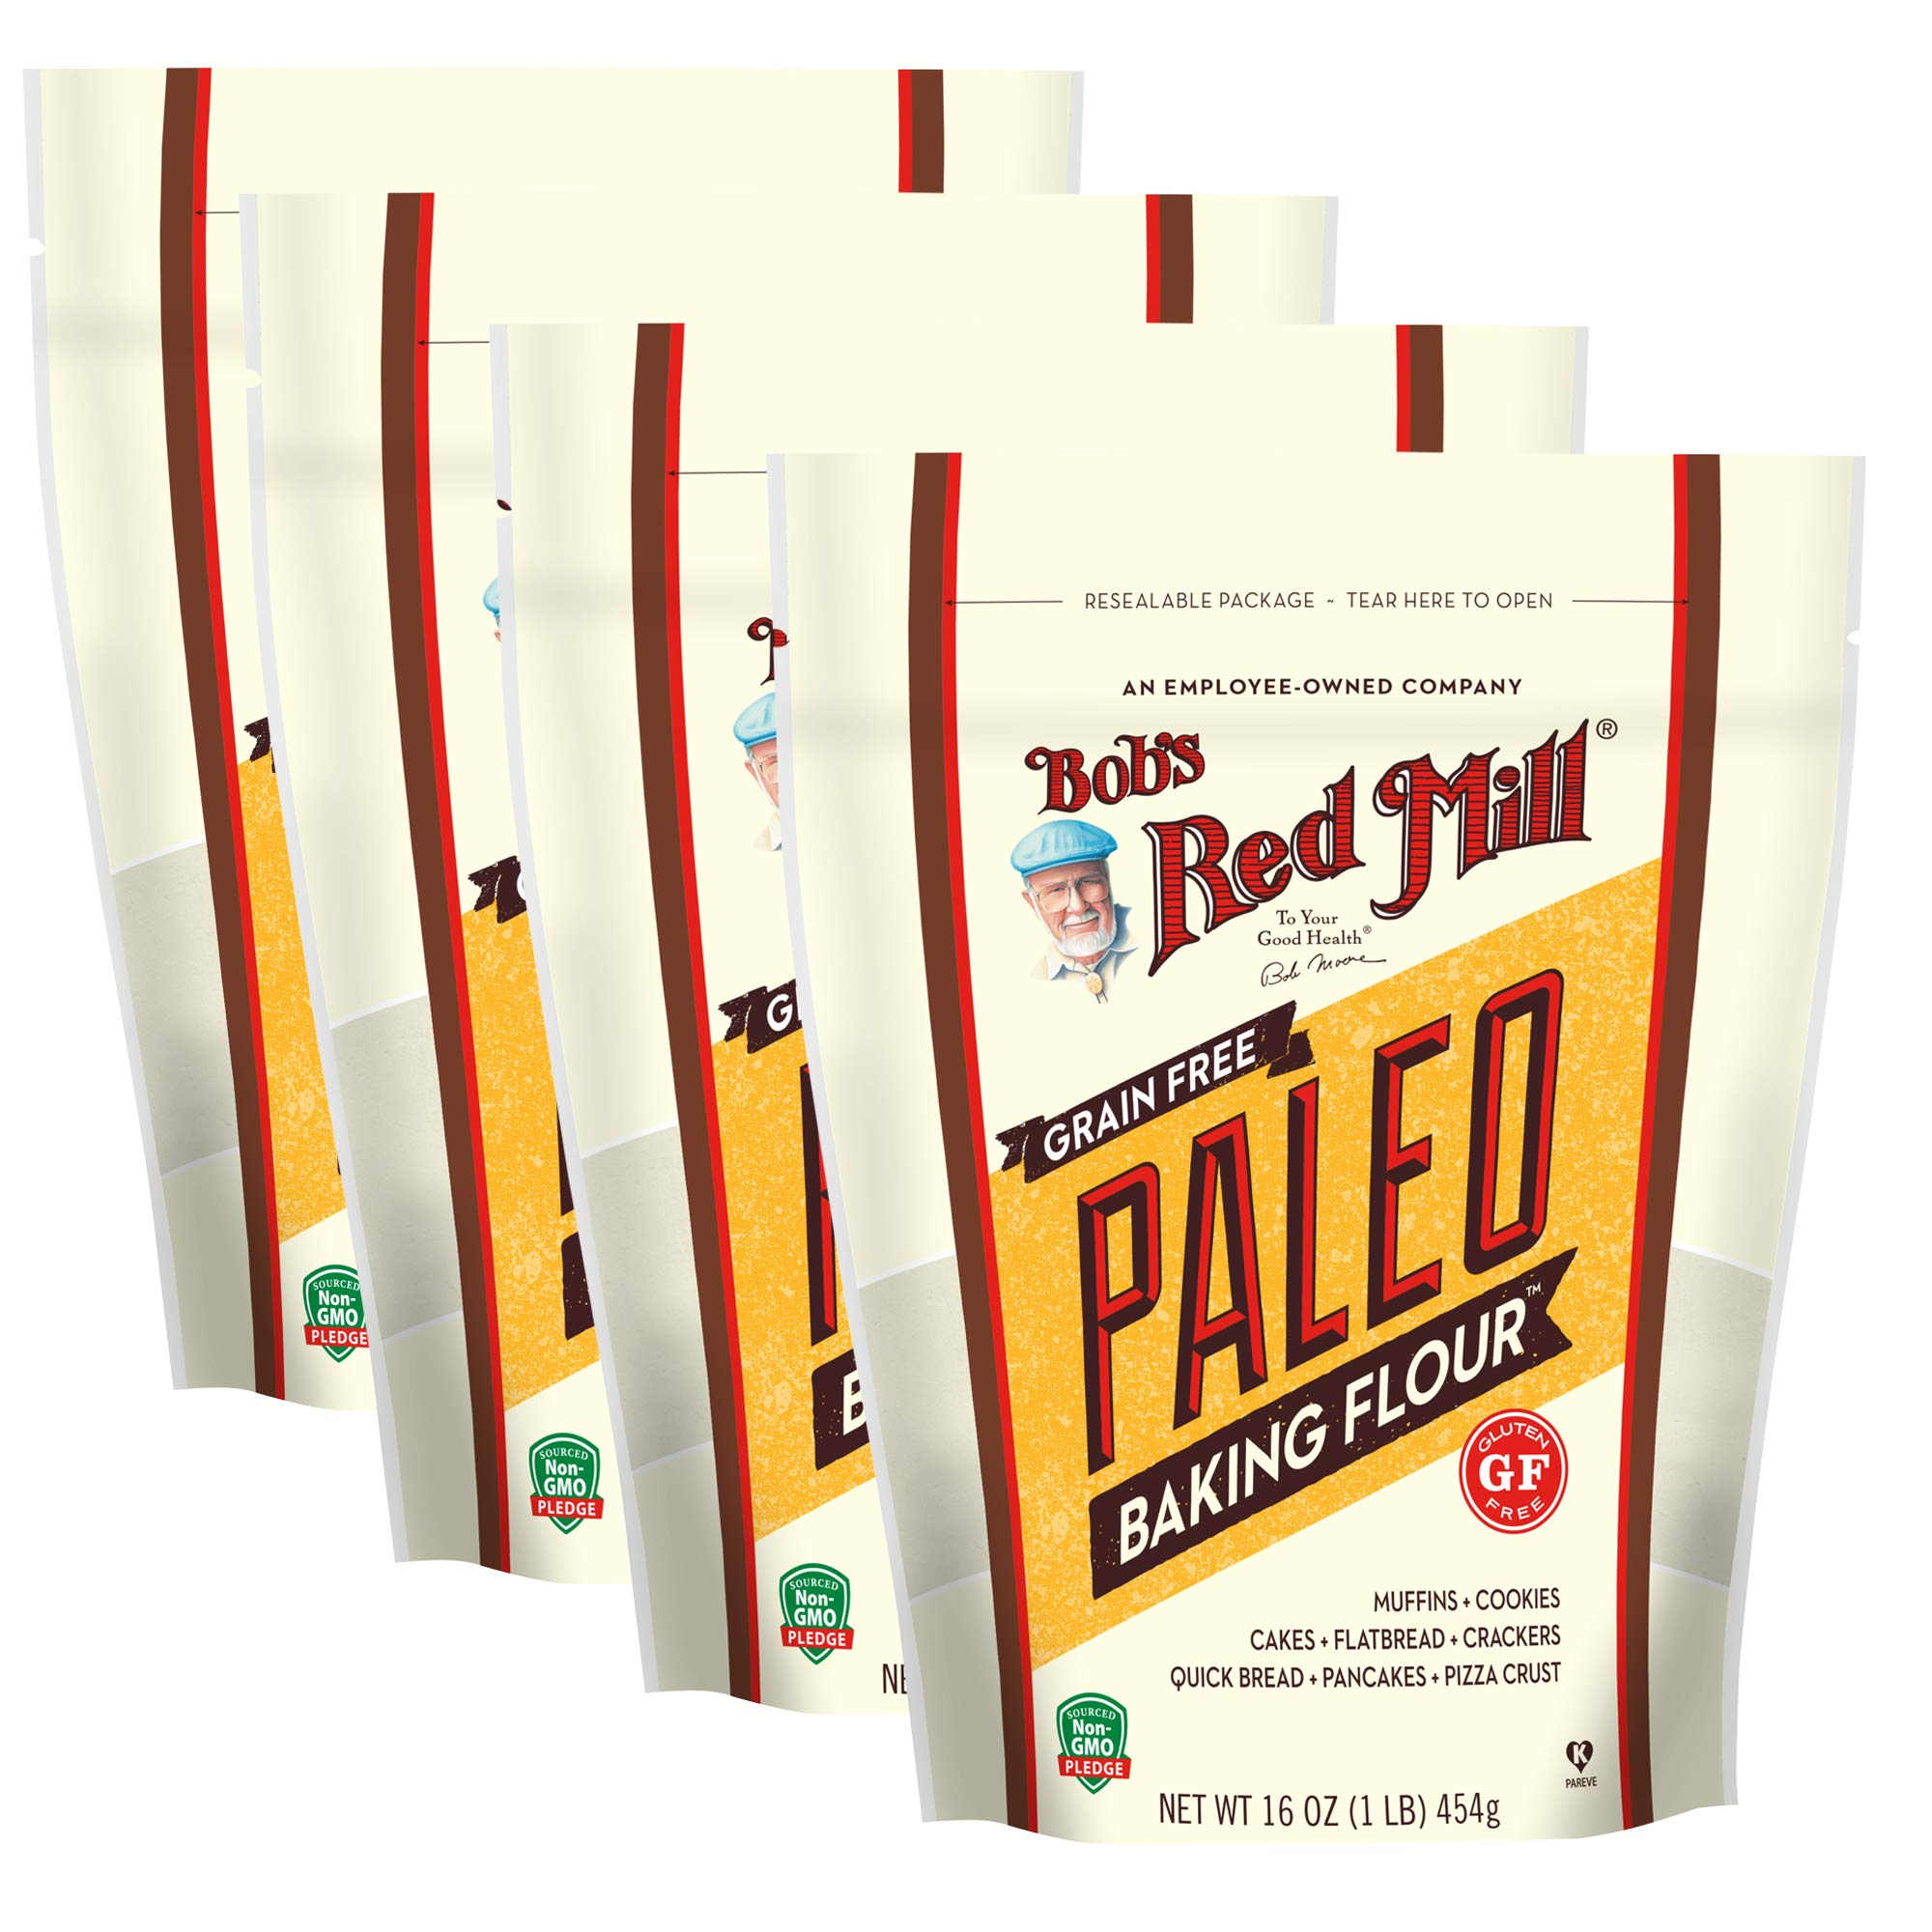 Bob's Red Mill Paleo Baking Flour, 16 Oz (4 Pack) by Bob's Red Mill